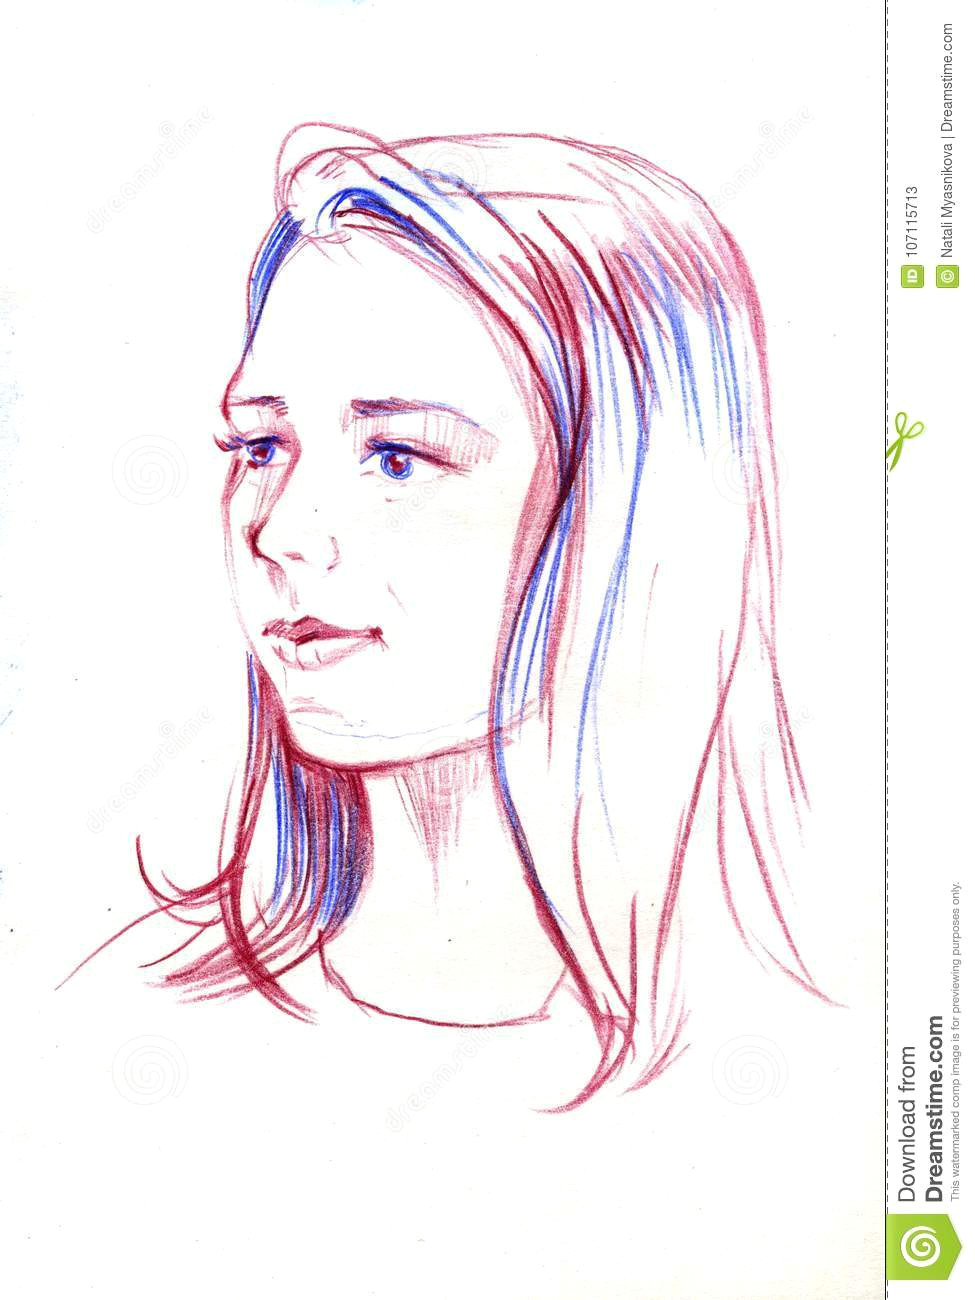 drawing portrait young woman female face sketch beautiful girl drawing portrait young woman female face sketch 107115713 jpg